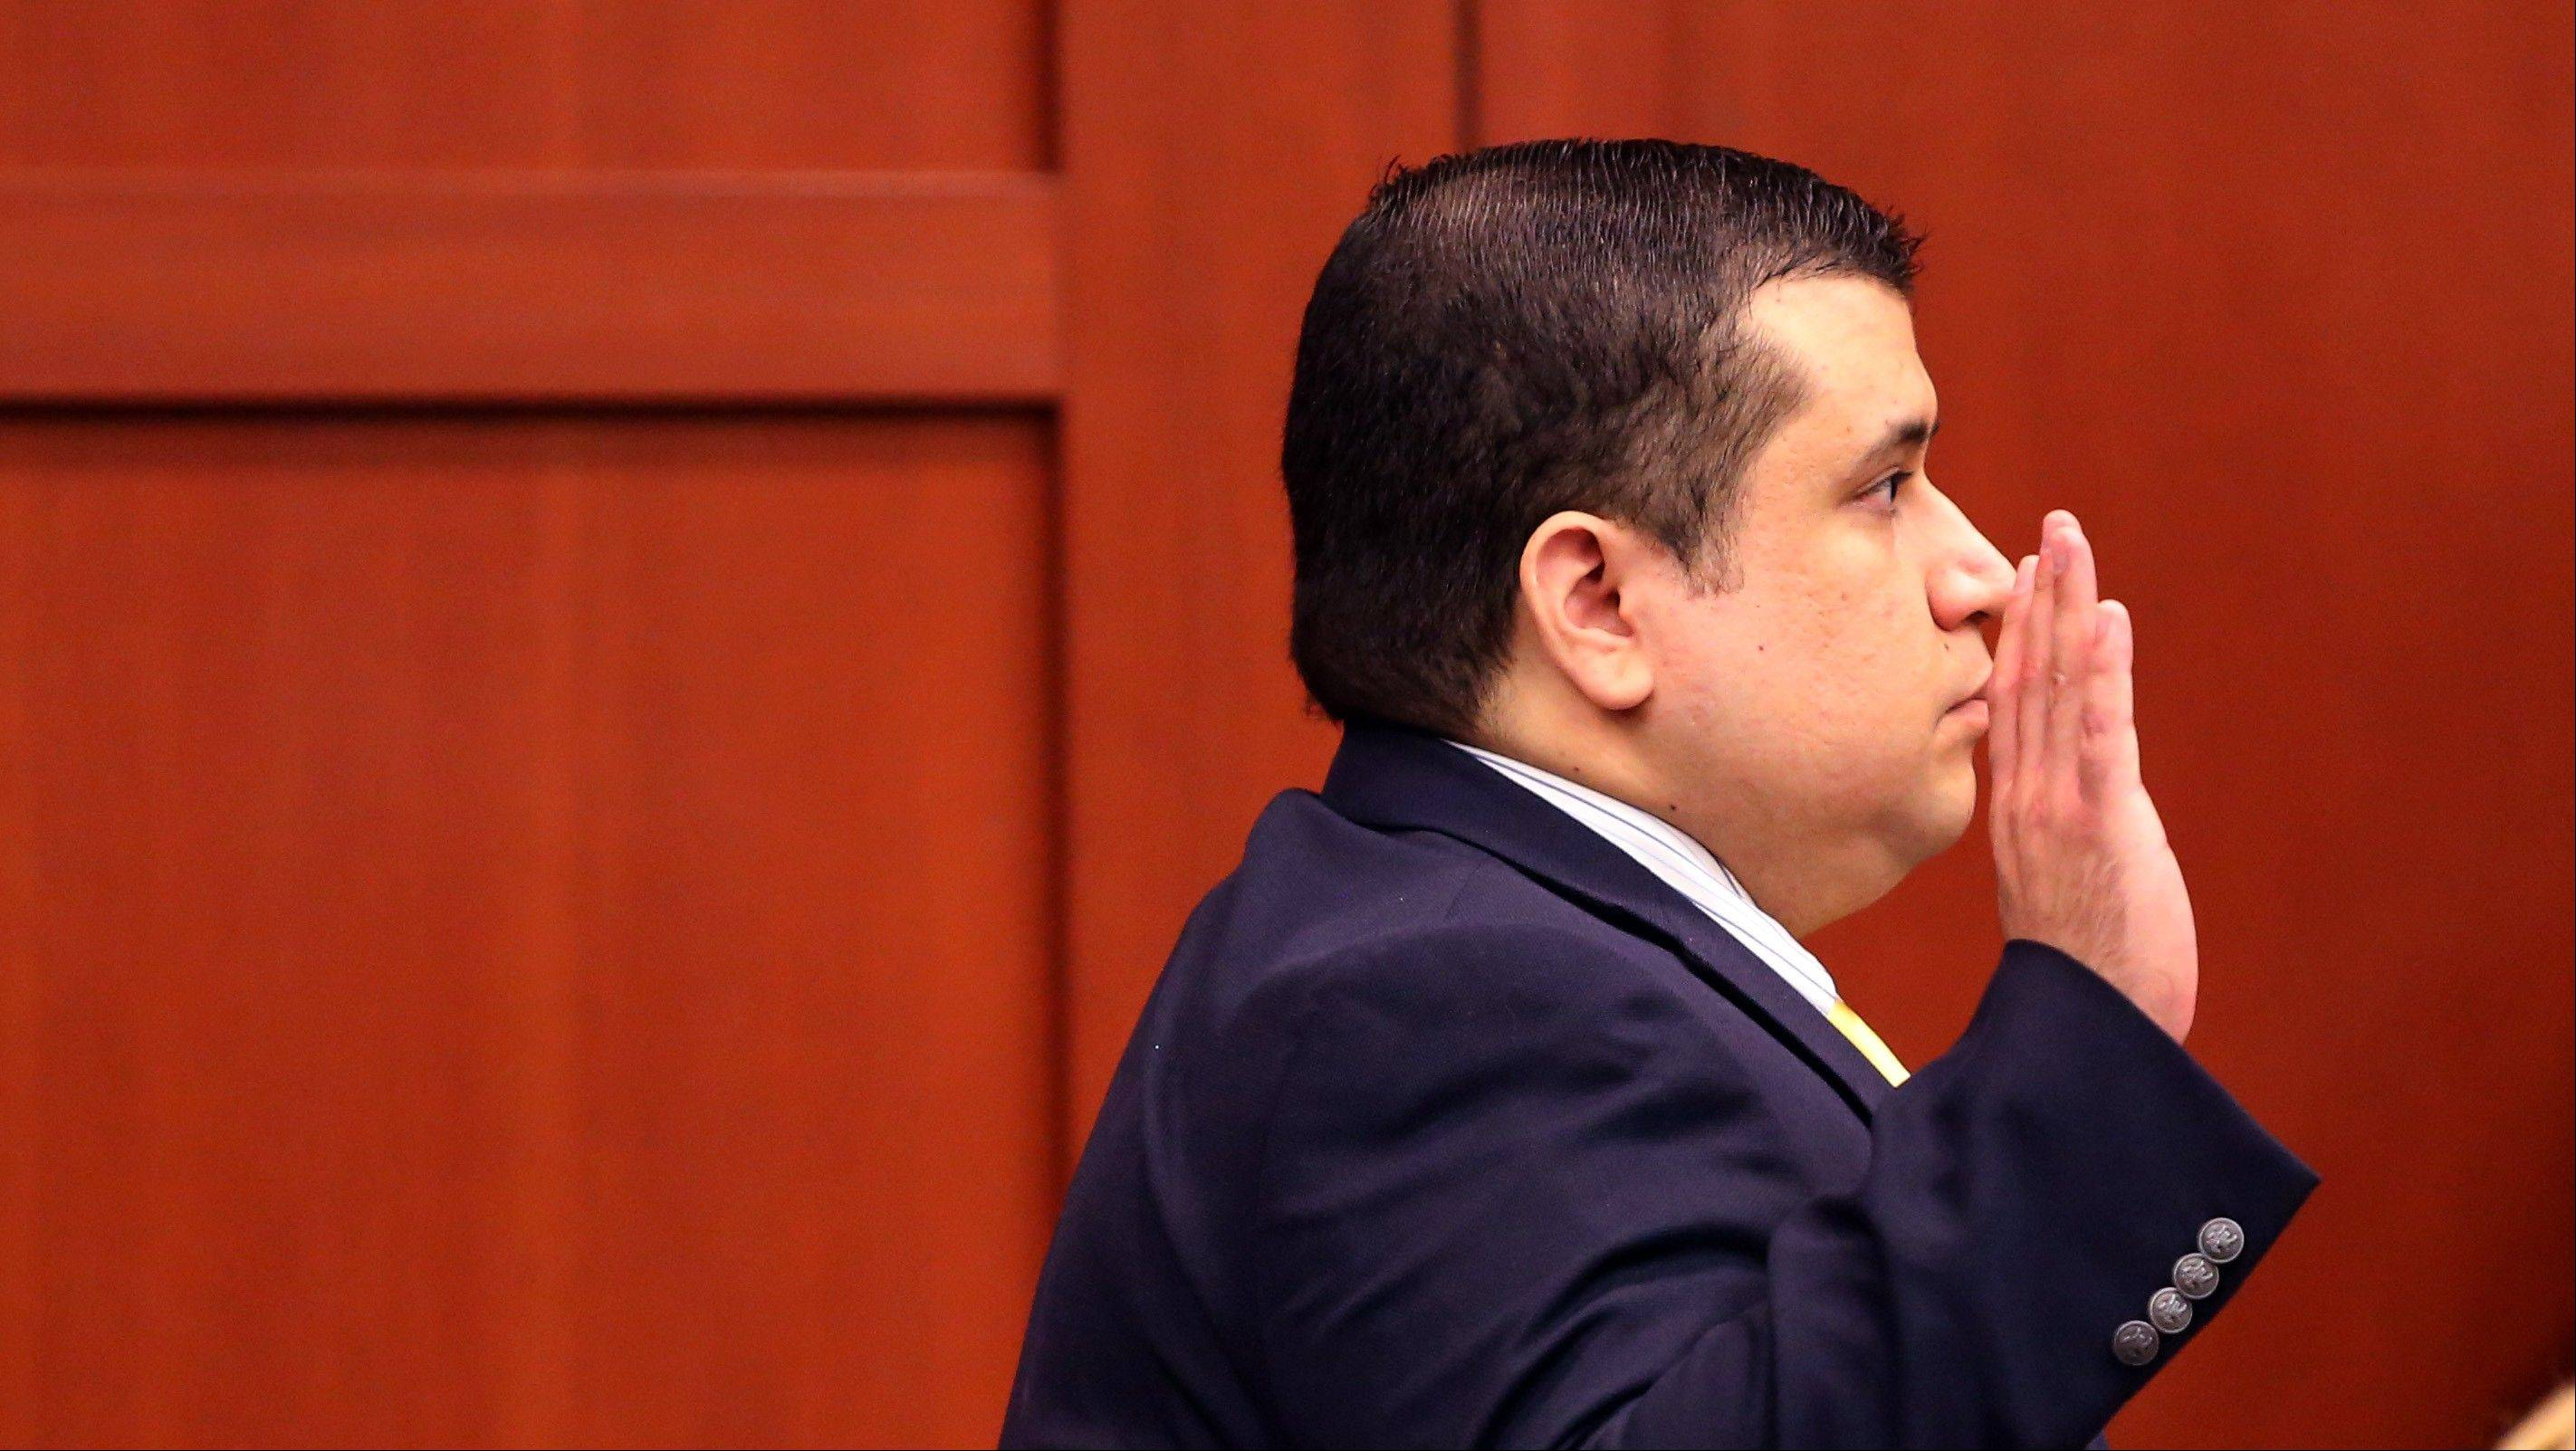 George Zimmerman, defendant in the killing of Trayvon Martin, is sworn in before answering questions by the judge, in Seminole circuit court, in Sanford, Fla., during a pretrial hearing, Tuesday, April 30, 2013. Zimmerman says he agrees with his attorneys� decision not to seek an immunity hearing under the state�s �Stand Your Ground� self-defense law.